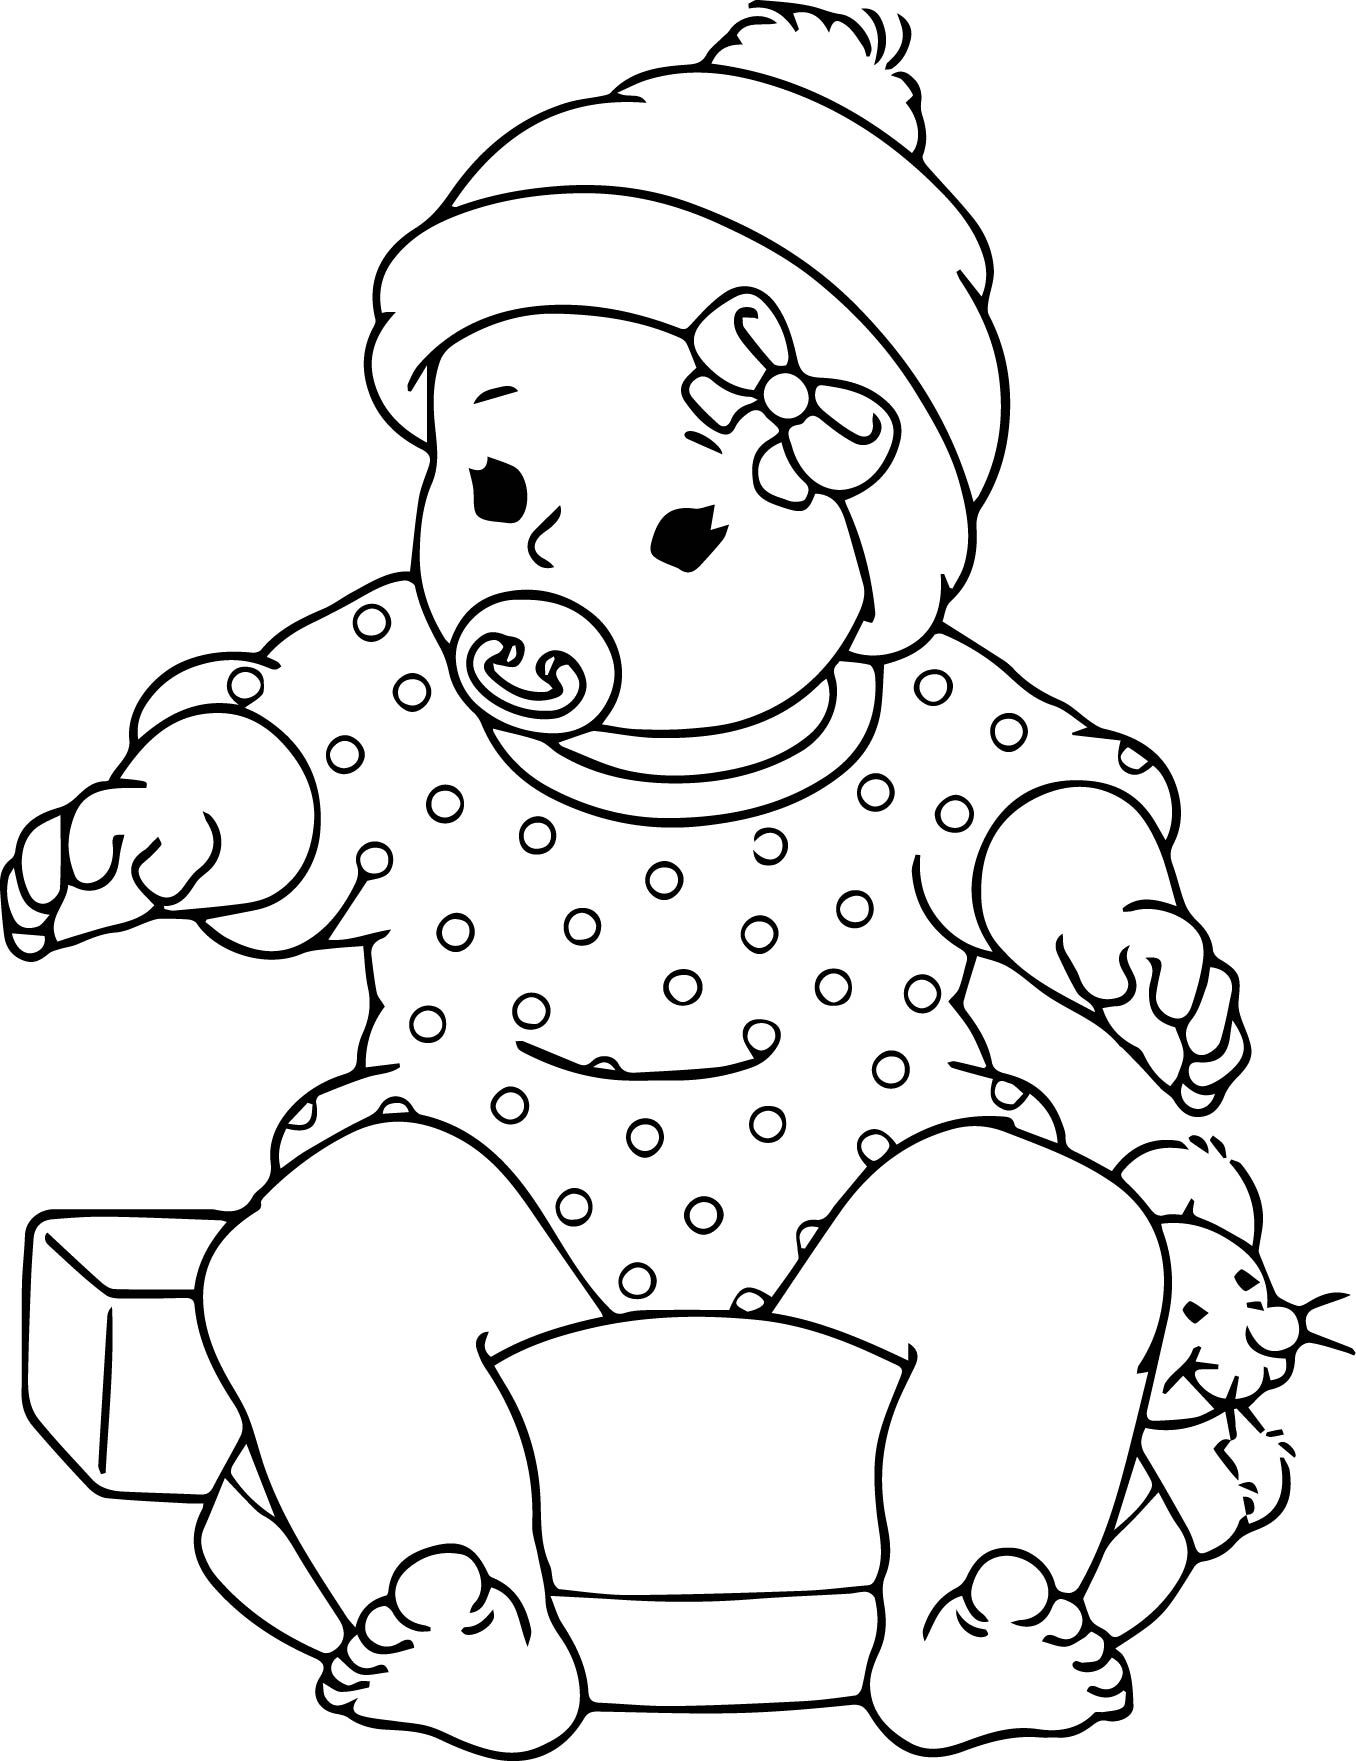 doll coloring page free printable baby doll coloring pages throughout inside page doll coloring